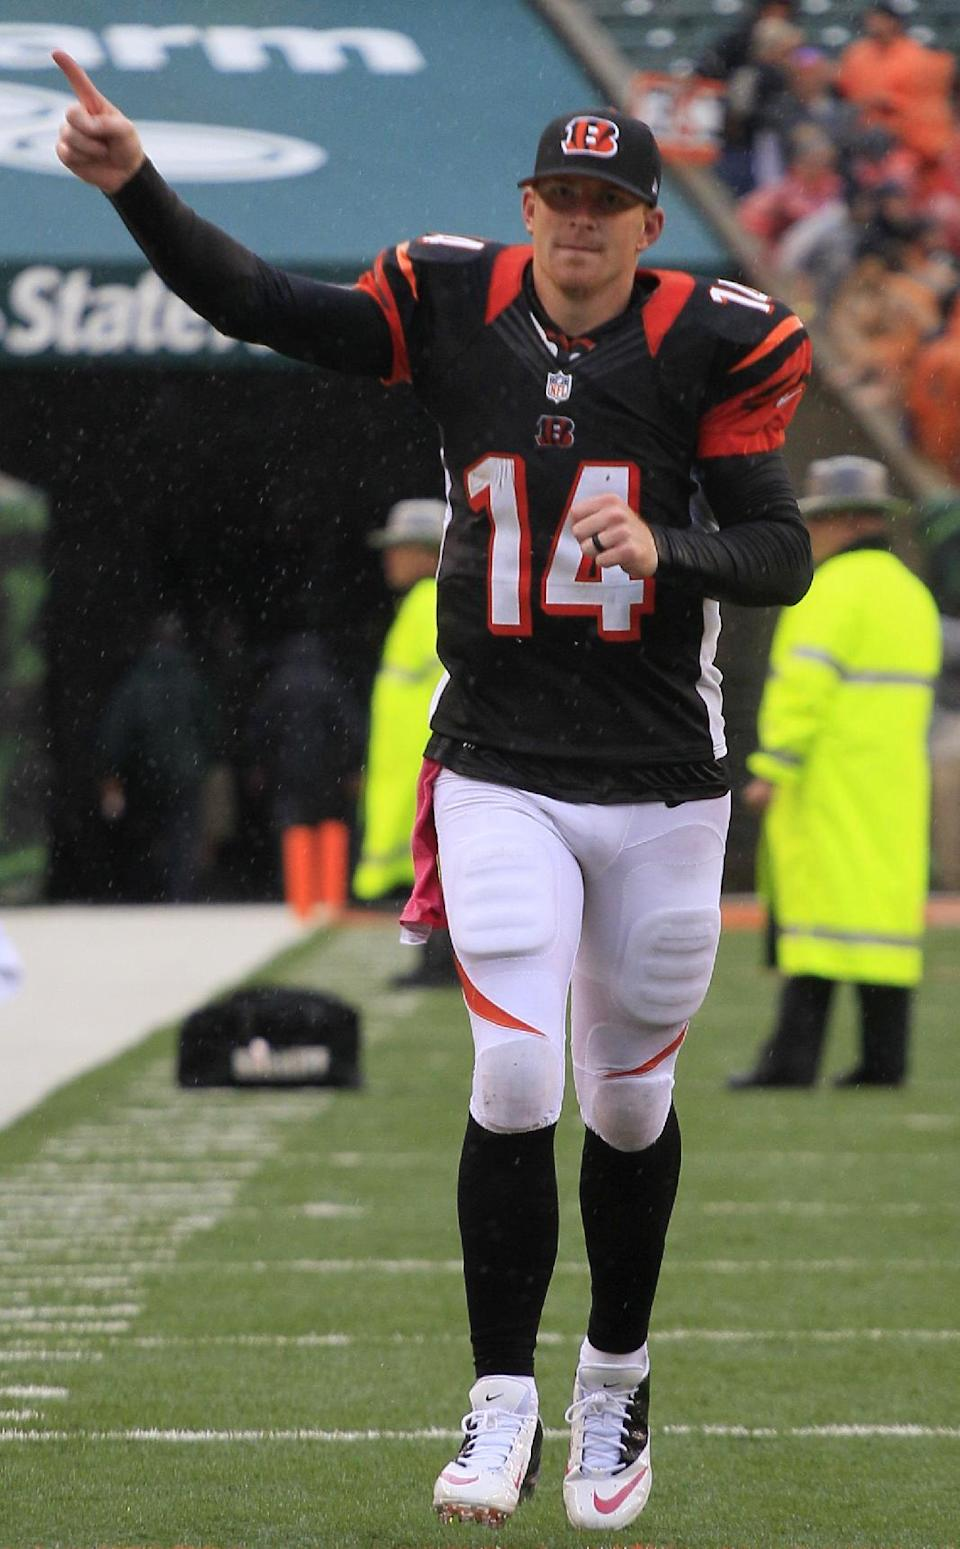 Cincinnati Bengals quarterback Andy Dalton runs off the field after the Bengals defeated the New England Patriots 13-6 in an NFL football game on Sunday, Oct. 6, 2013, in Cincinnati. (AP Photo/Tom Uhlman)